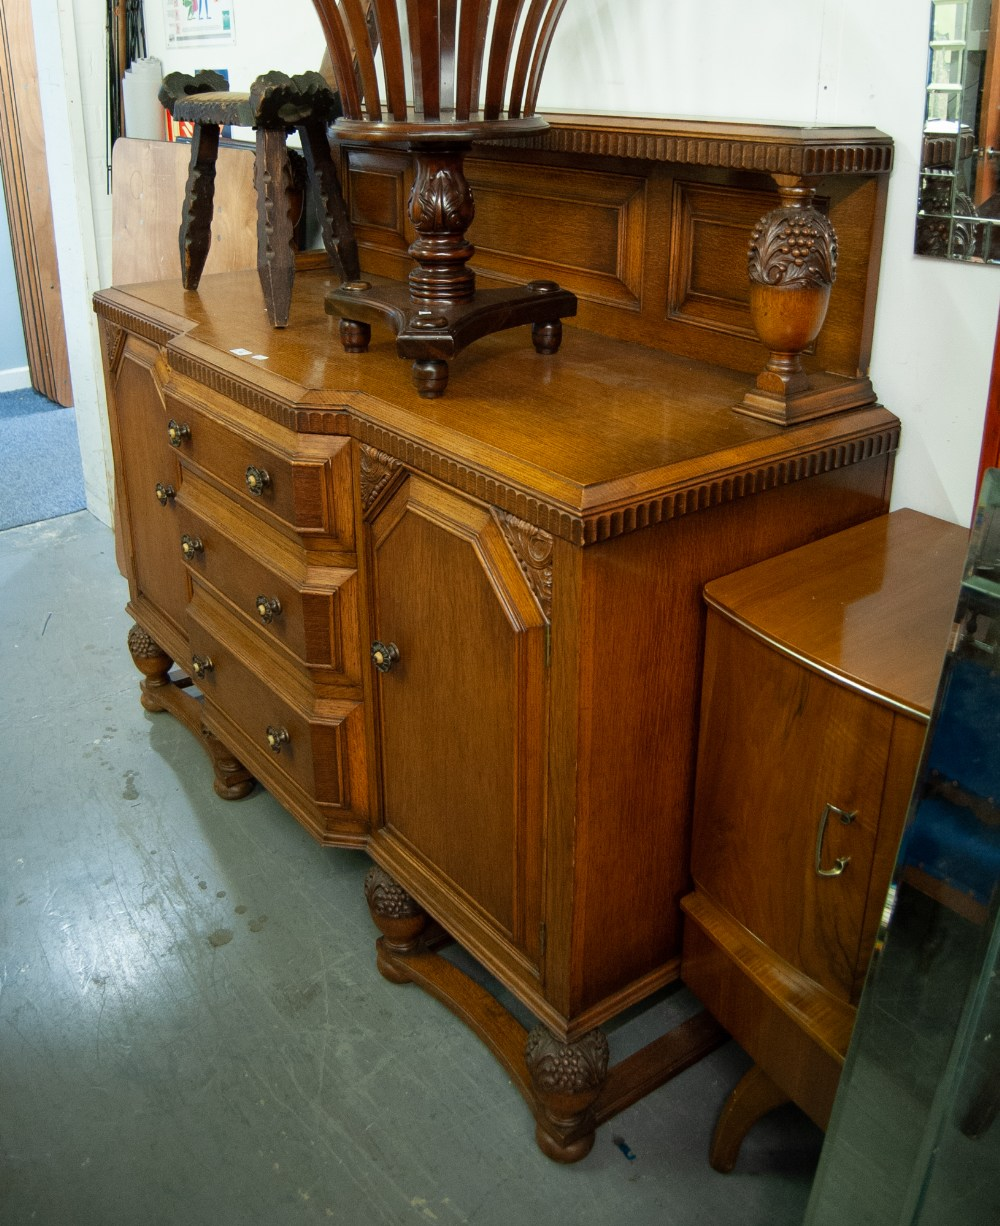 Lot 49 - 1930s OAK DINING ROOM SUITE COMPRISING A DROP-LEAF TABLE; FOUR CHAIRS WITH LEATHER PAD BACK AND